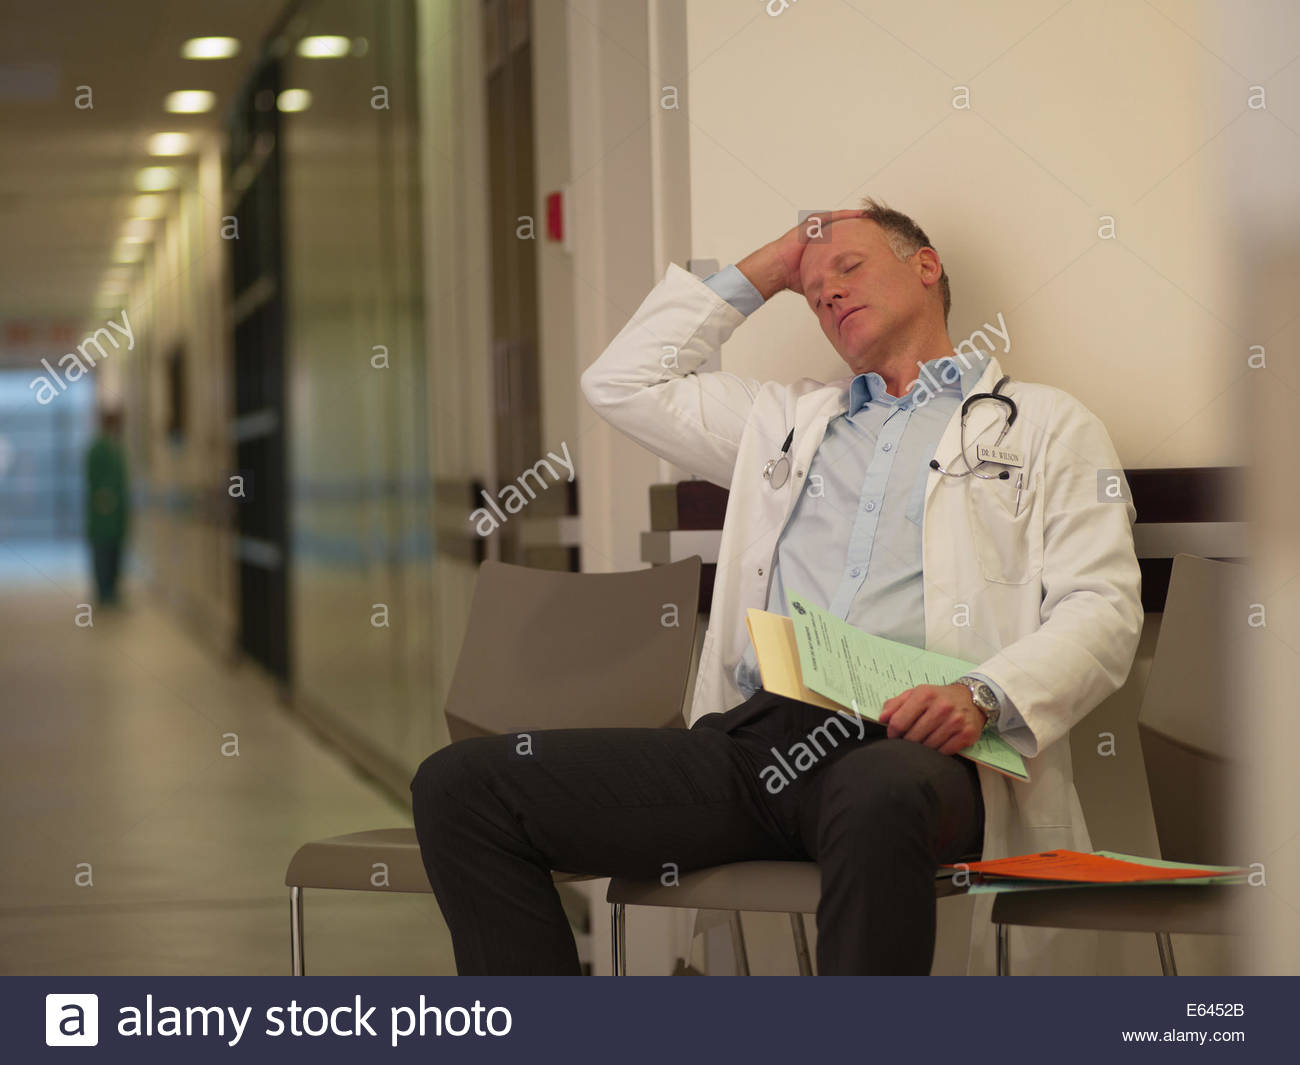 Tired doctor sitting in hospital waiting area - Stock Image